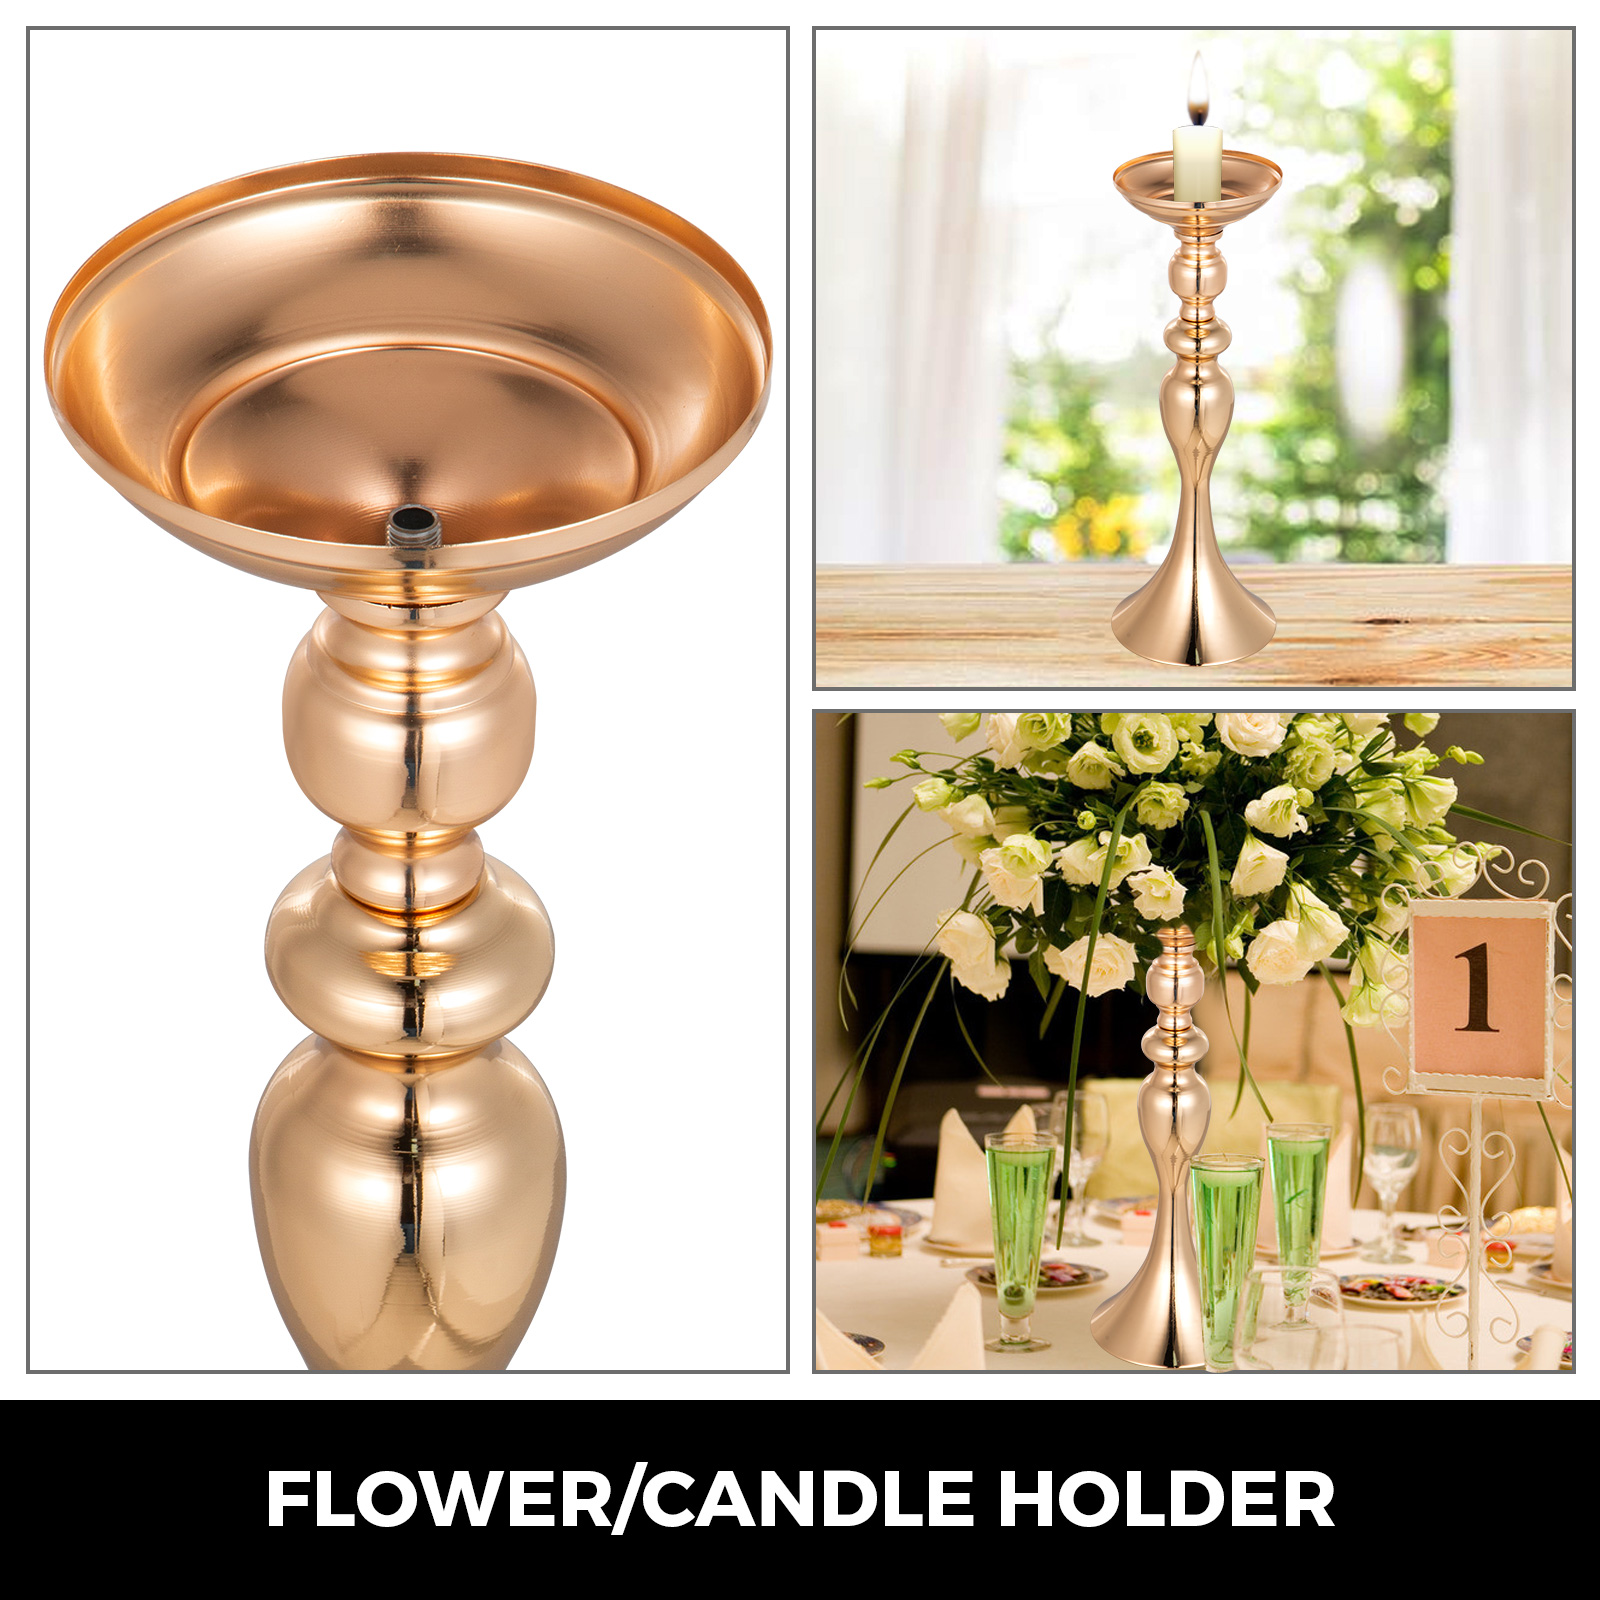 Flower-Rack-for-Wedding-Metal-Candle-Stand-4-11pcs-Centerpiece-Flower-Vase thumbnail 147